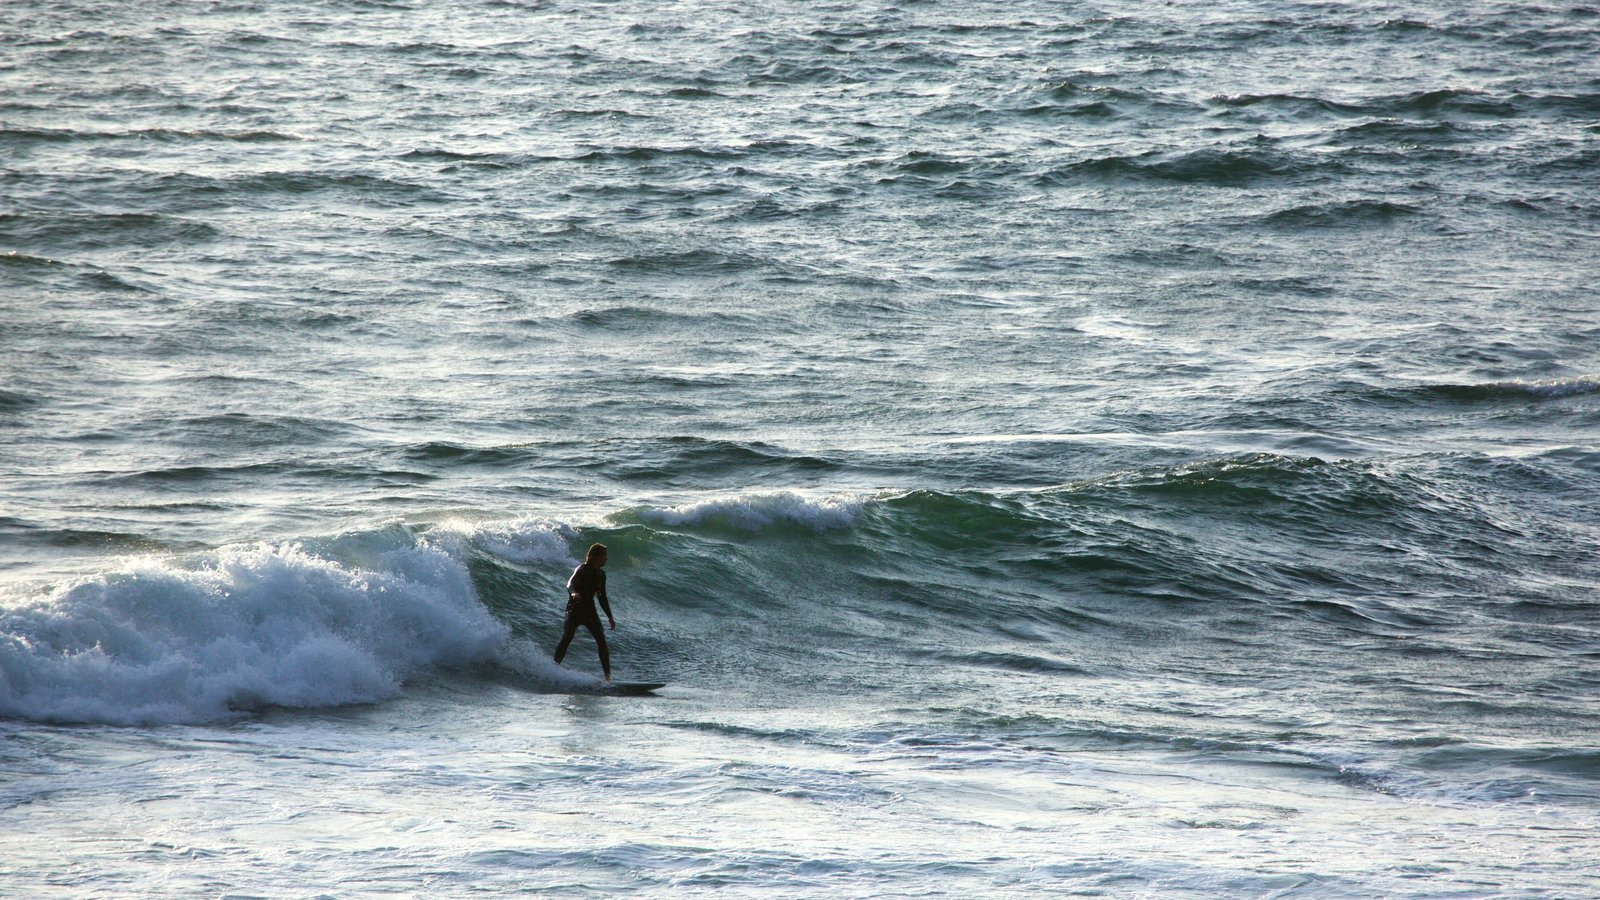 Sonoma Valley which includes general coastal views, surfing and surf